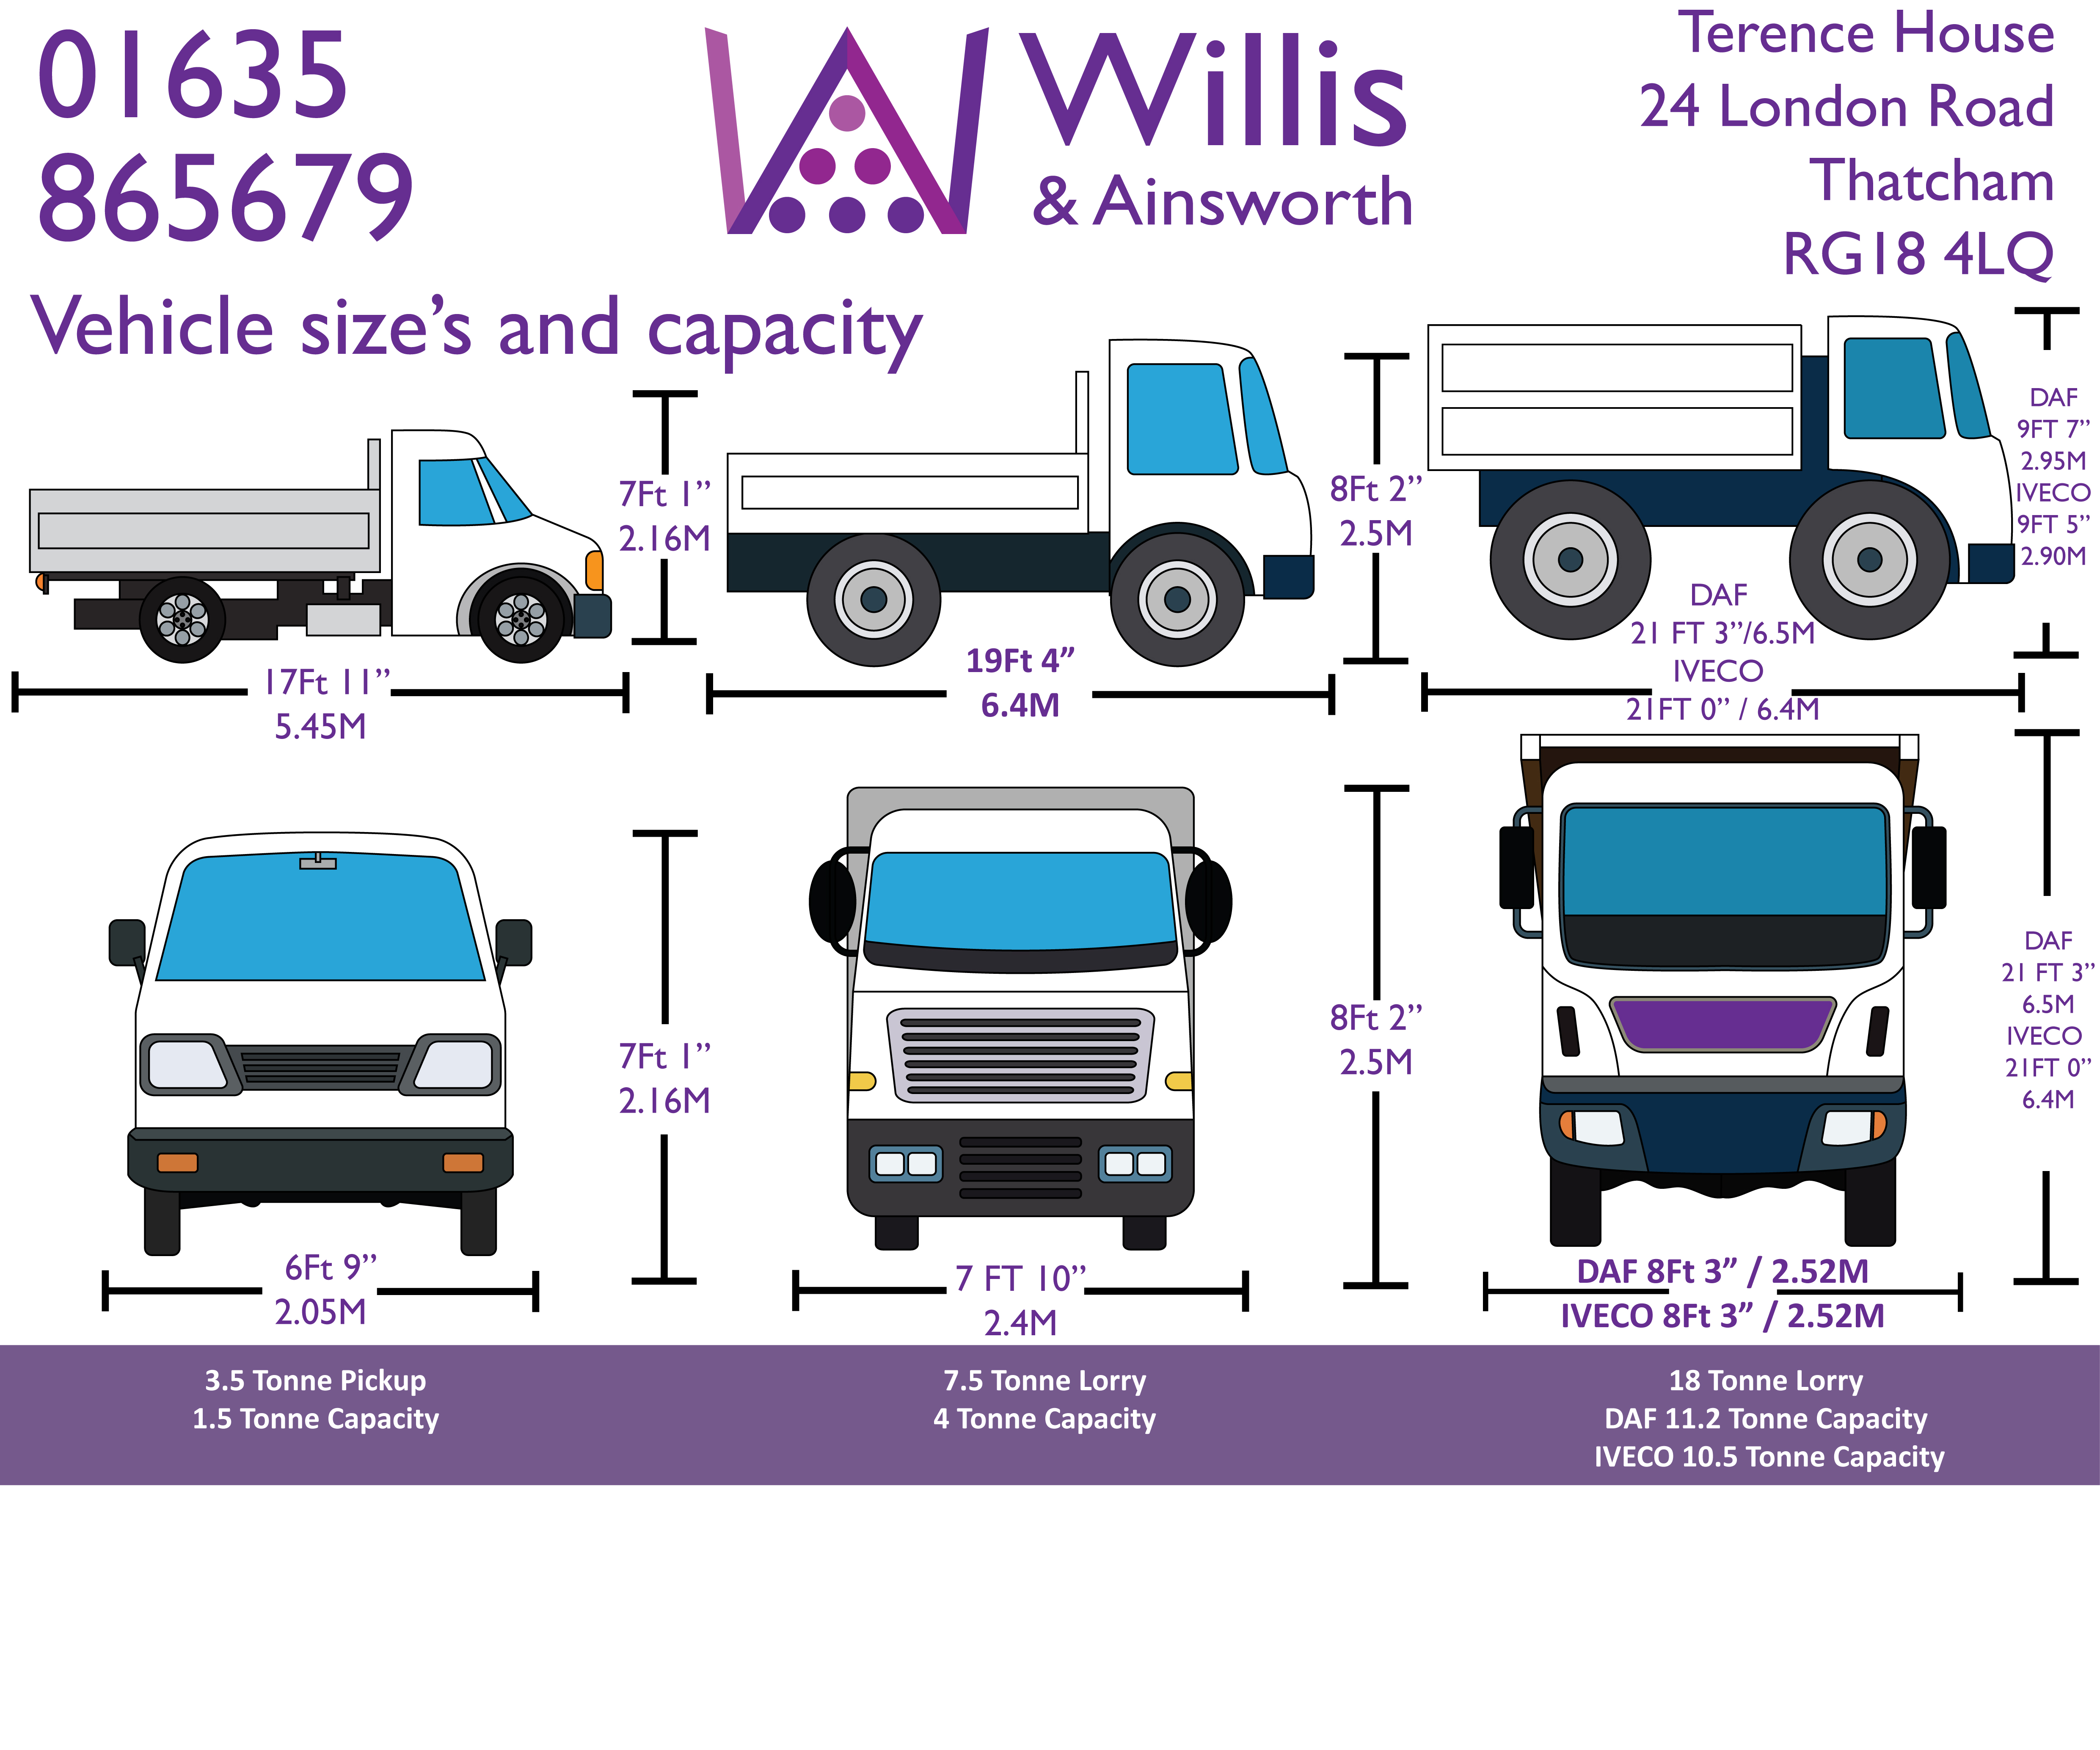 willis-and-ainsworth-vehicle-guide-2017.jpg